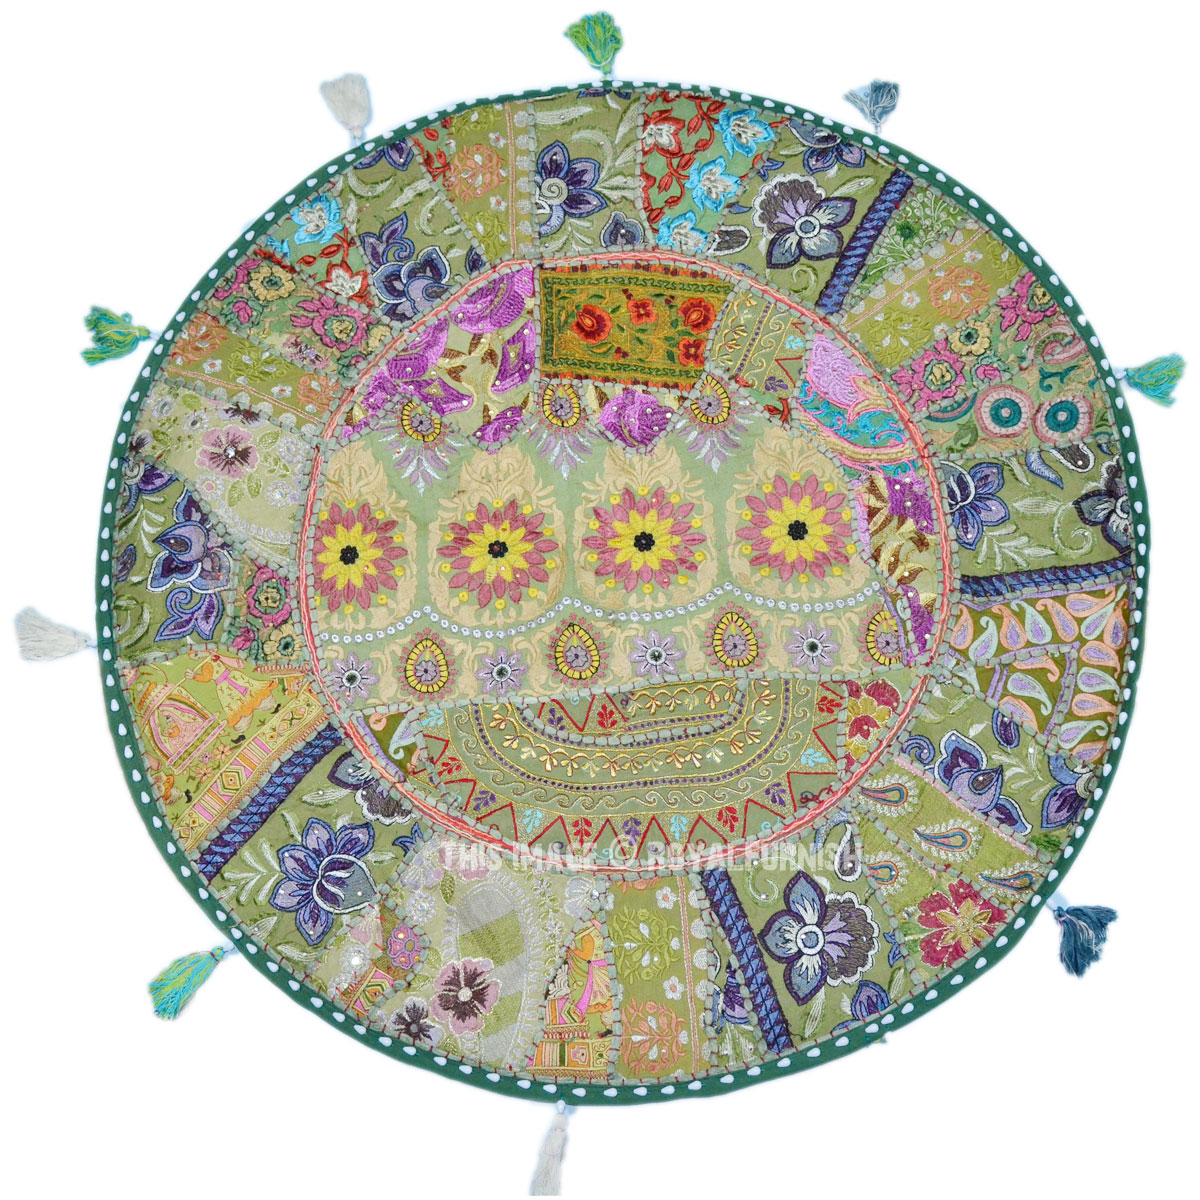 Extra Large Round Floor Pillows : Extra Large Green Recycled Sari Patchwork Round Floor Pillow Cover - RoyalFurnish.com